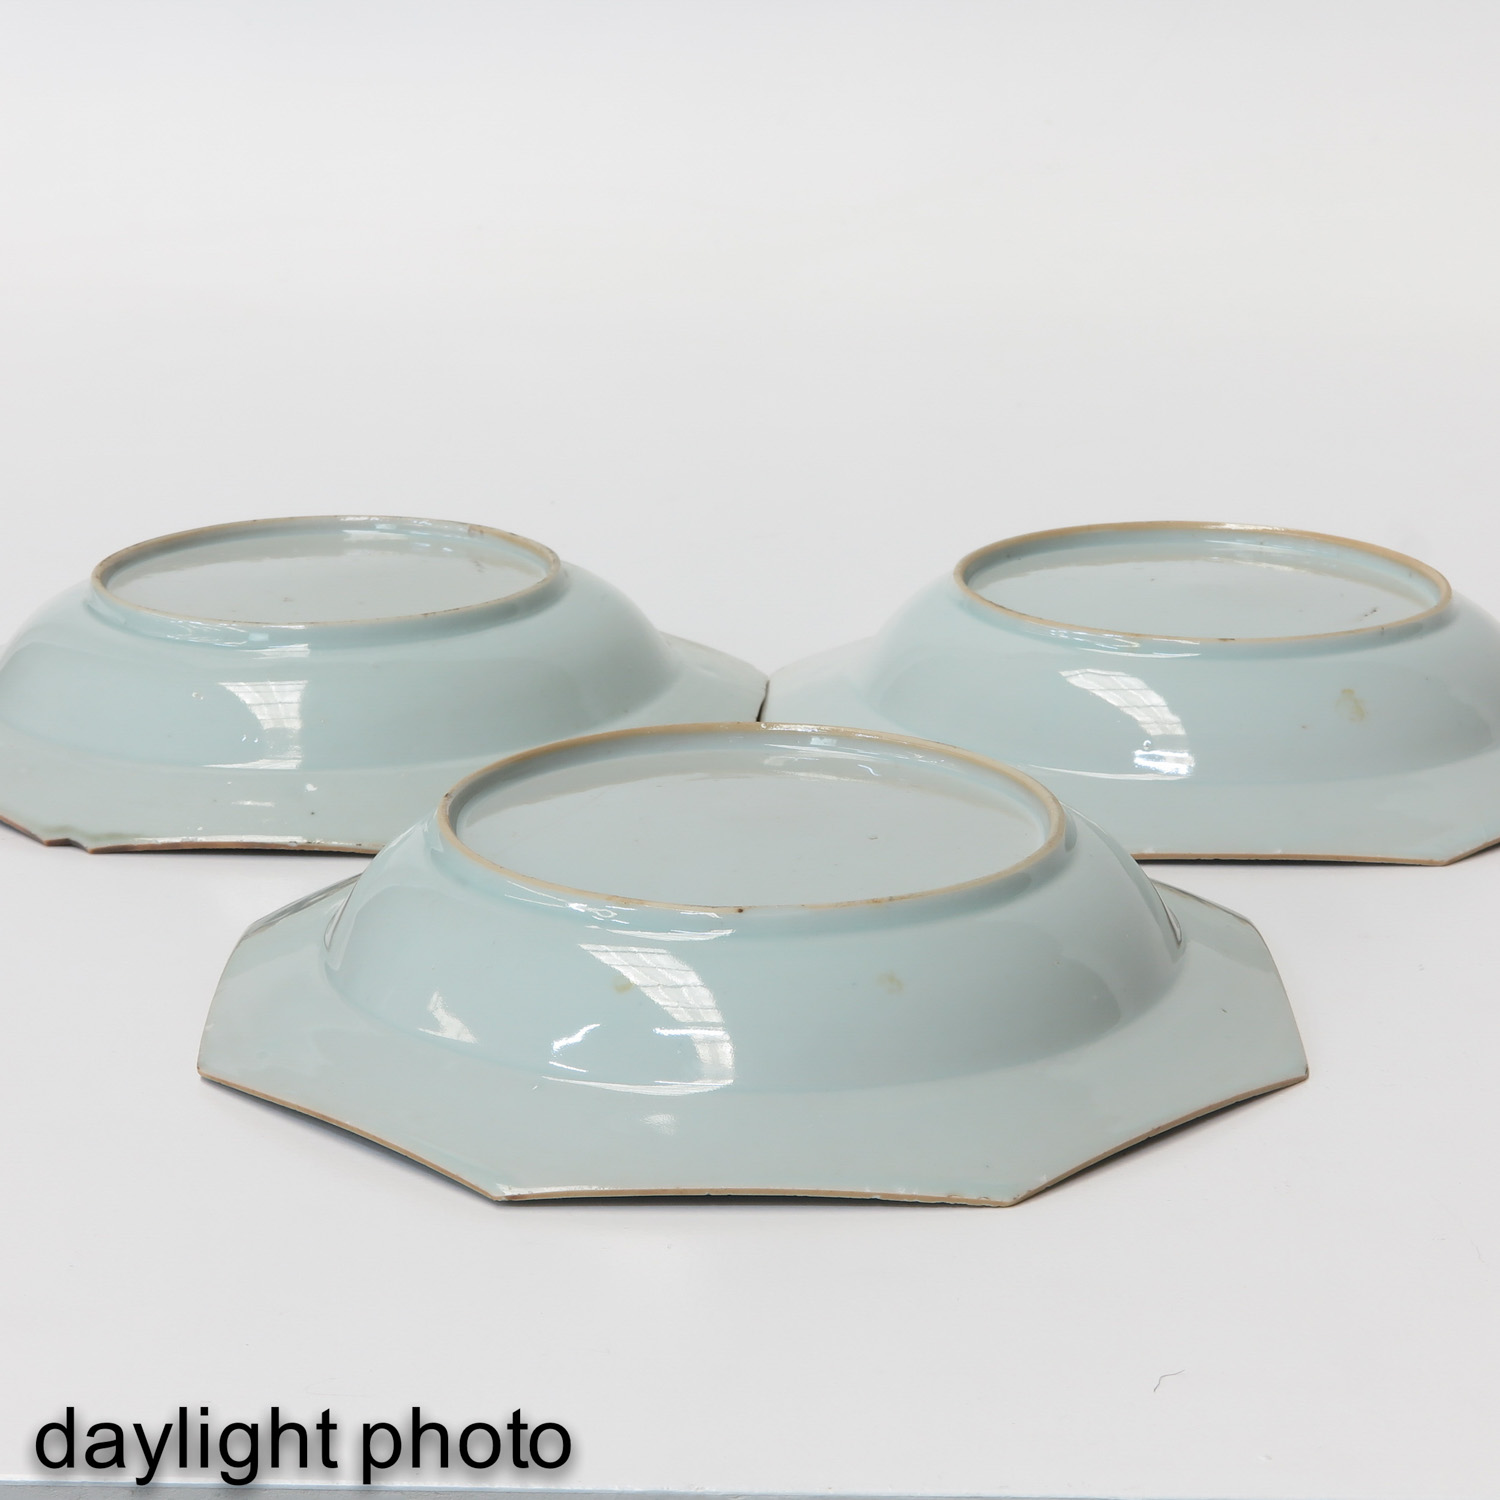 A Series of 3 Blue and White Plates - Image 10 of 10